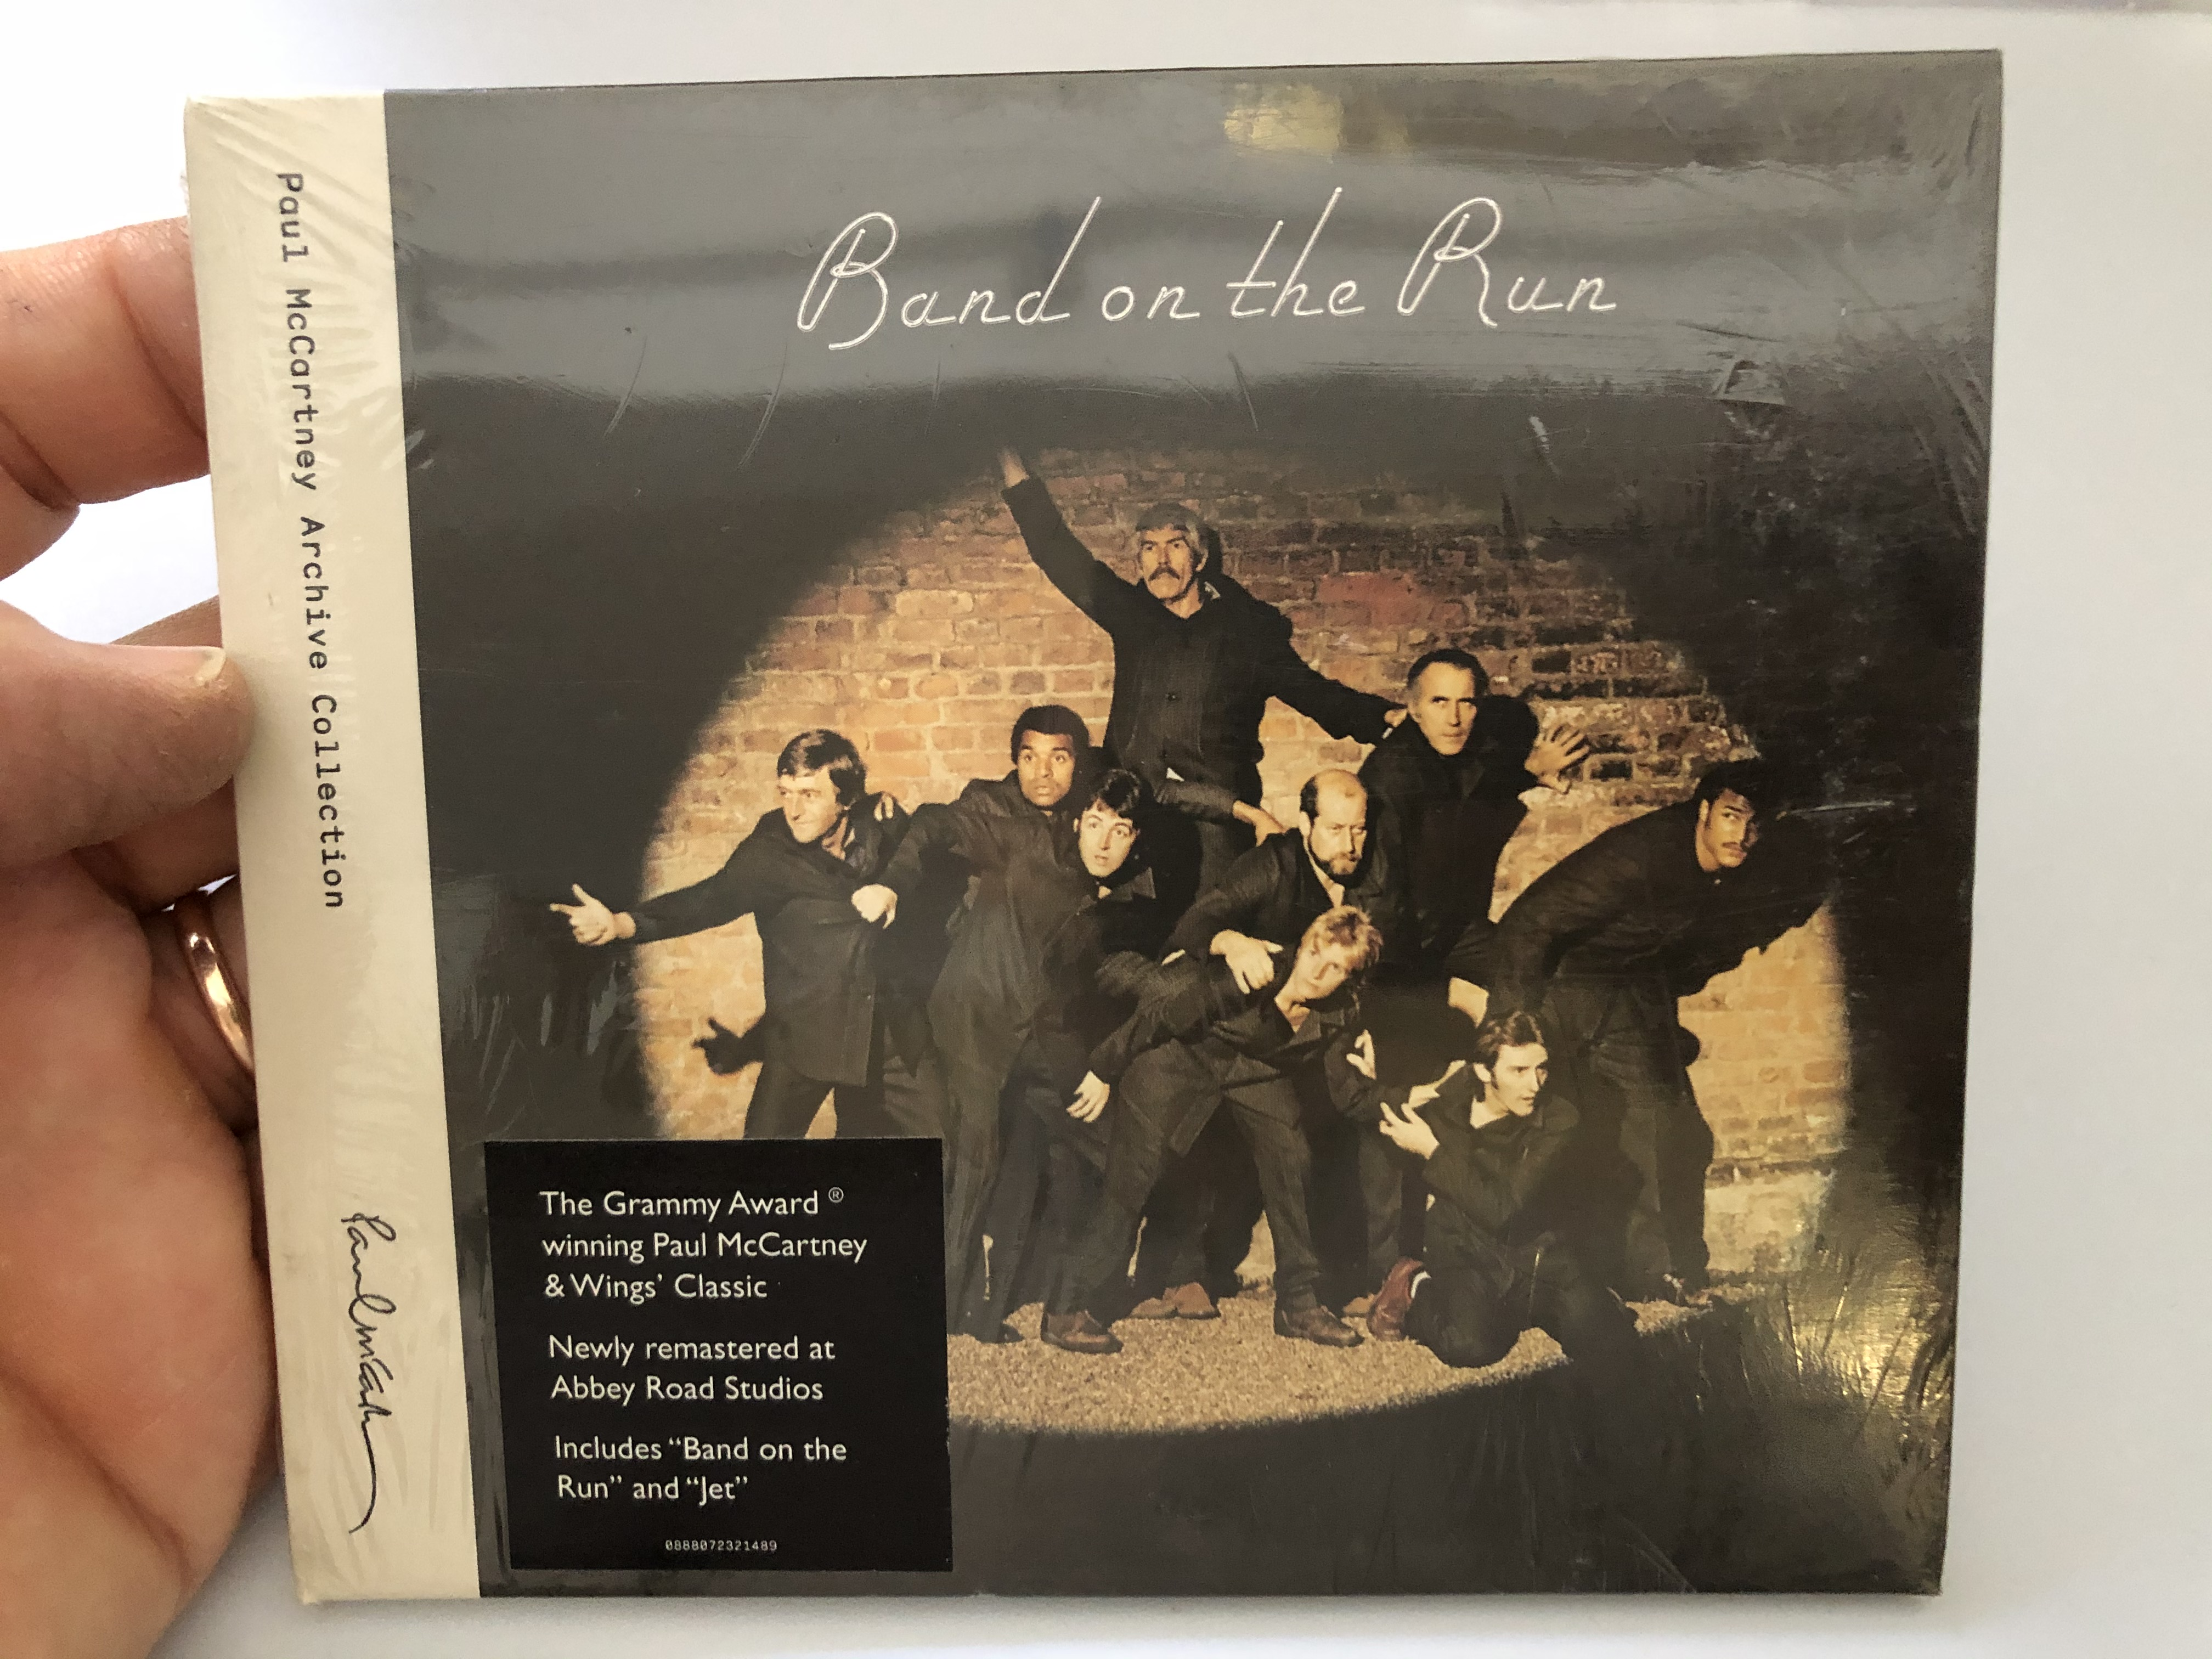 band-on-the-run-paul-mccartney-archive-collection-the-grammy-award-winning-paul-mccartney-wings-classic-newly-remastered-at-abbey-road-studios.-includes-band-on-the-run-and-jet-1-.jpg